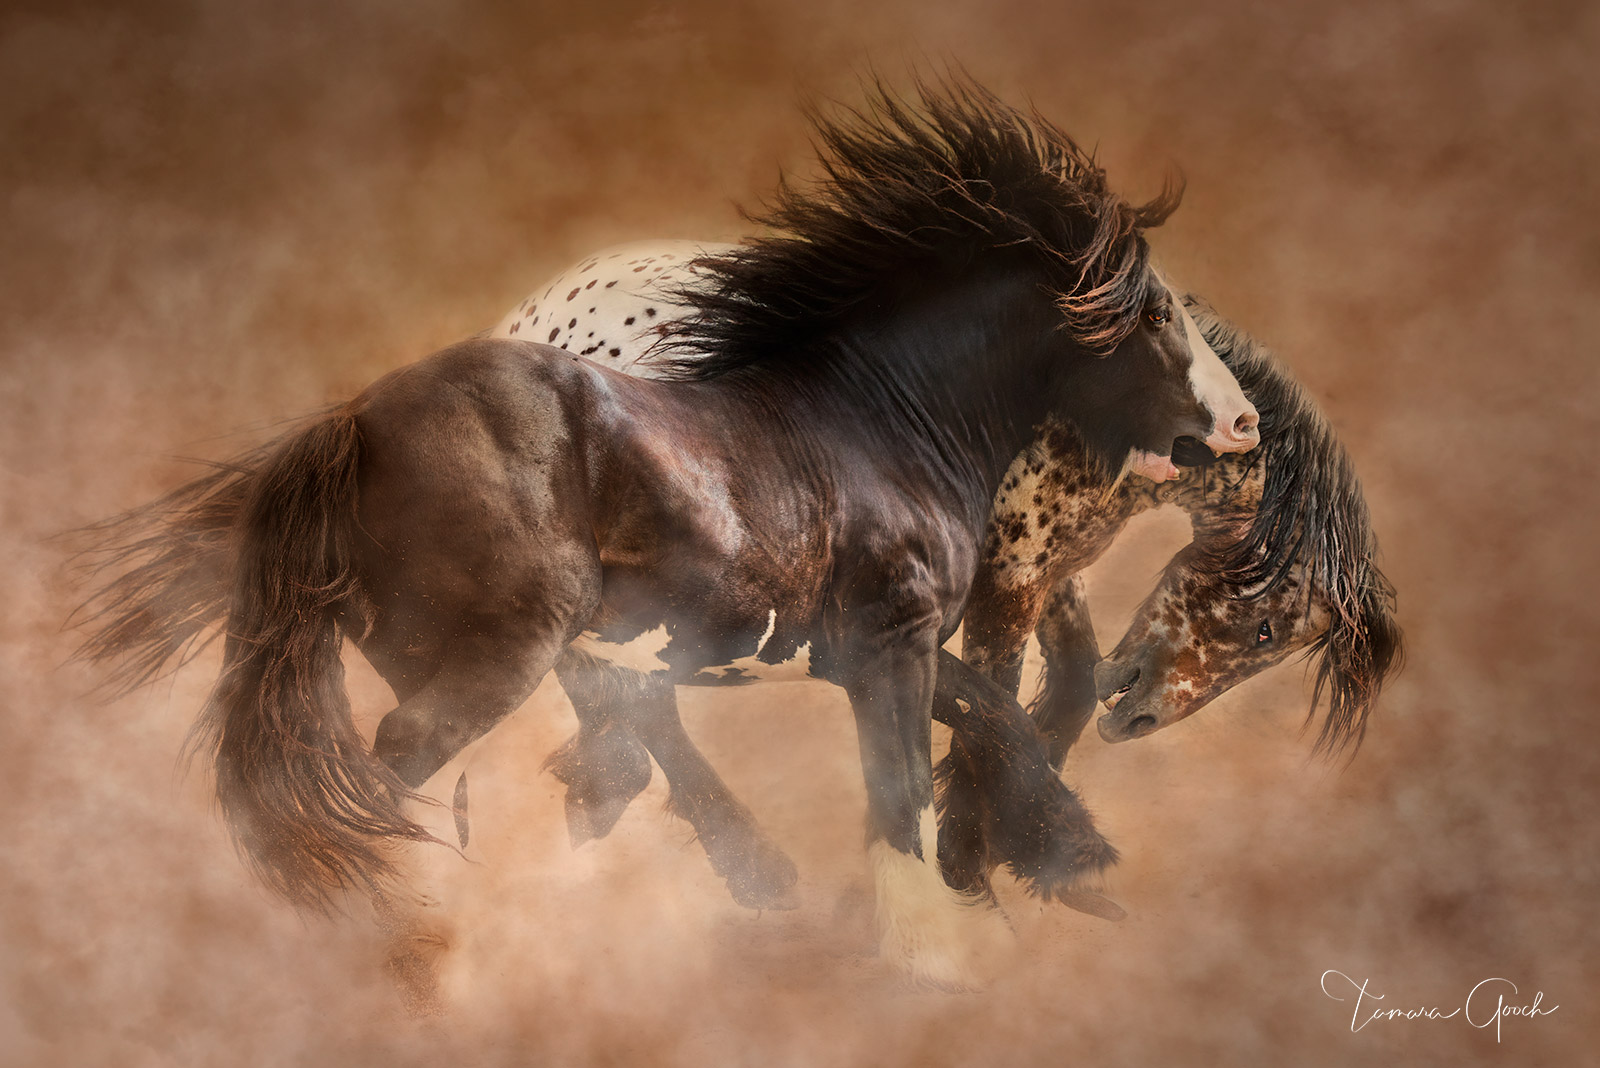 Playful Gypsy Horses fine art print for sale, Gypsy, Gypsy cobs, Gypsy Vanner, prints, photos, artwork, art equestrian fine art, equestrian style, home decor, interior design, equine, equestrian, hors, photo